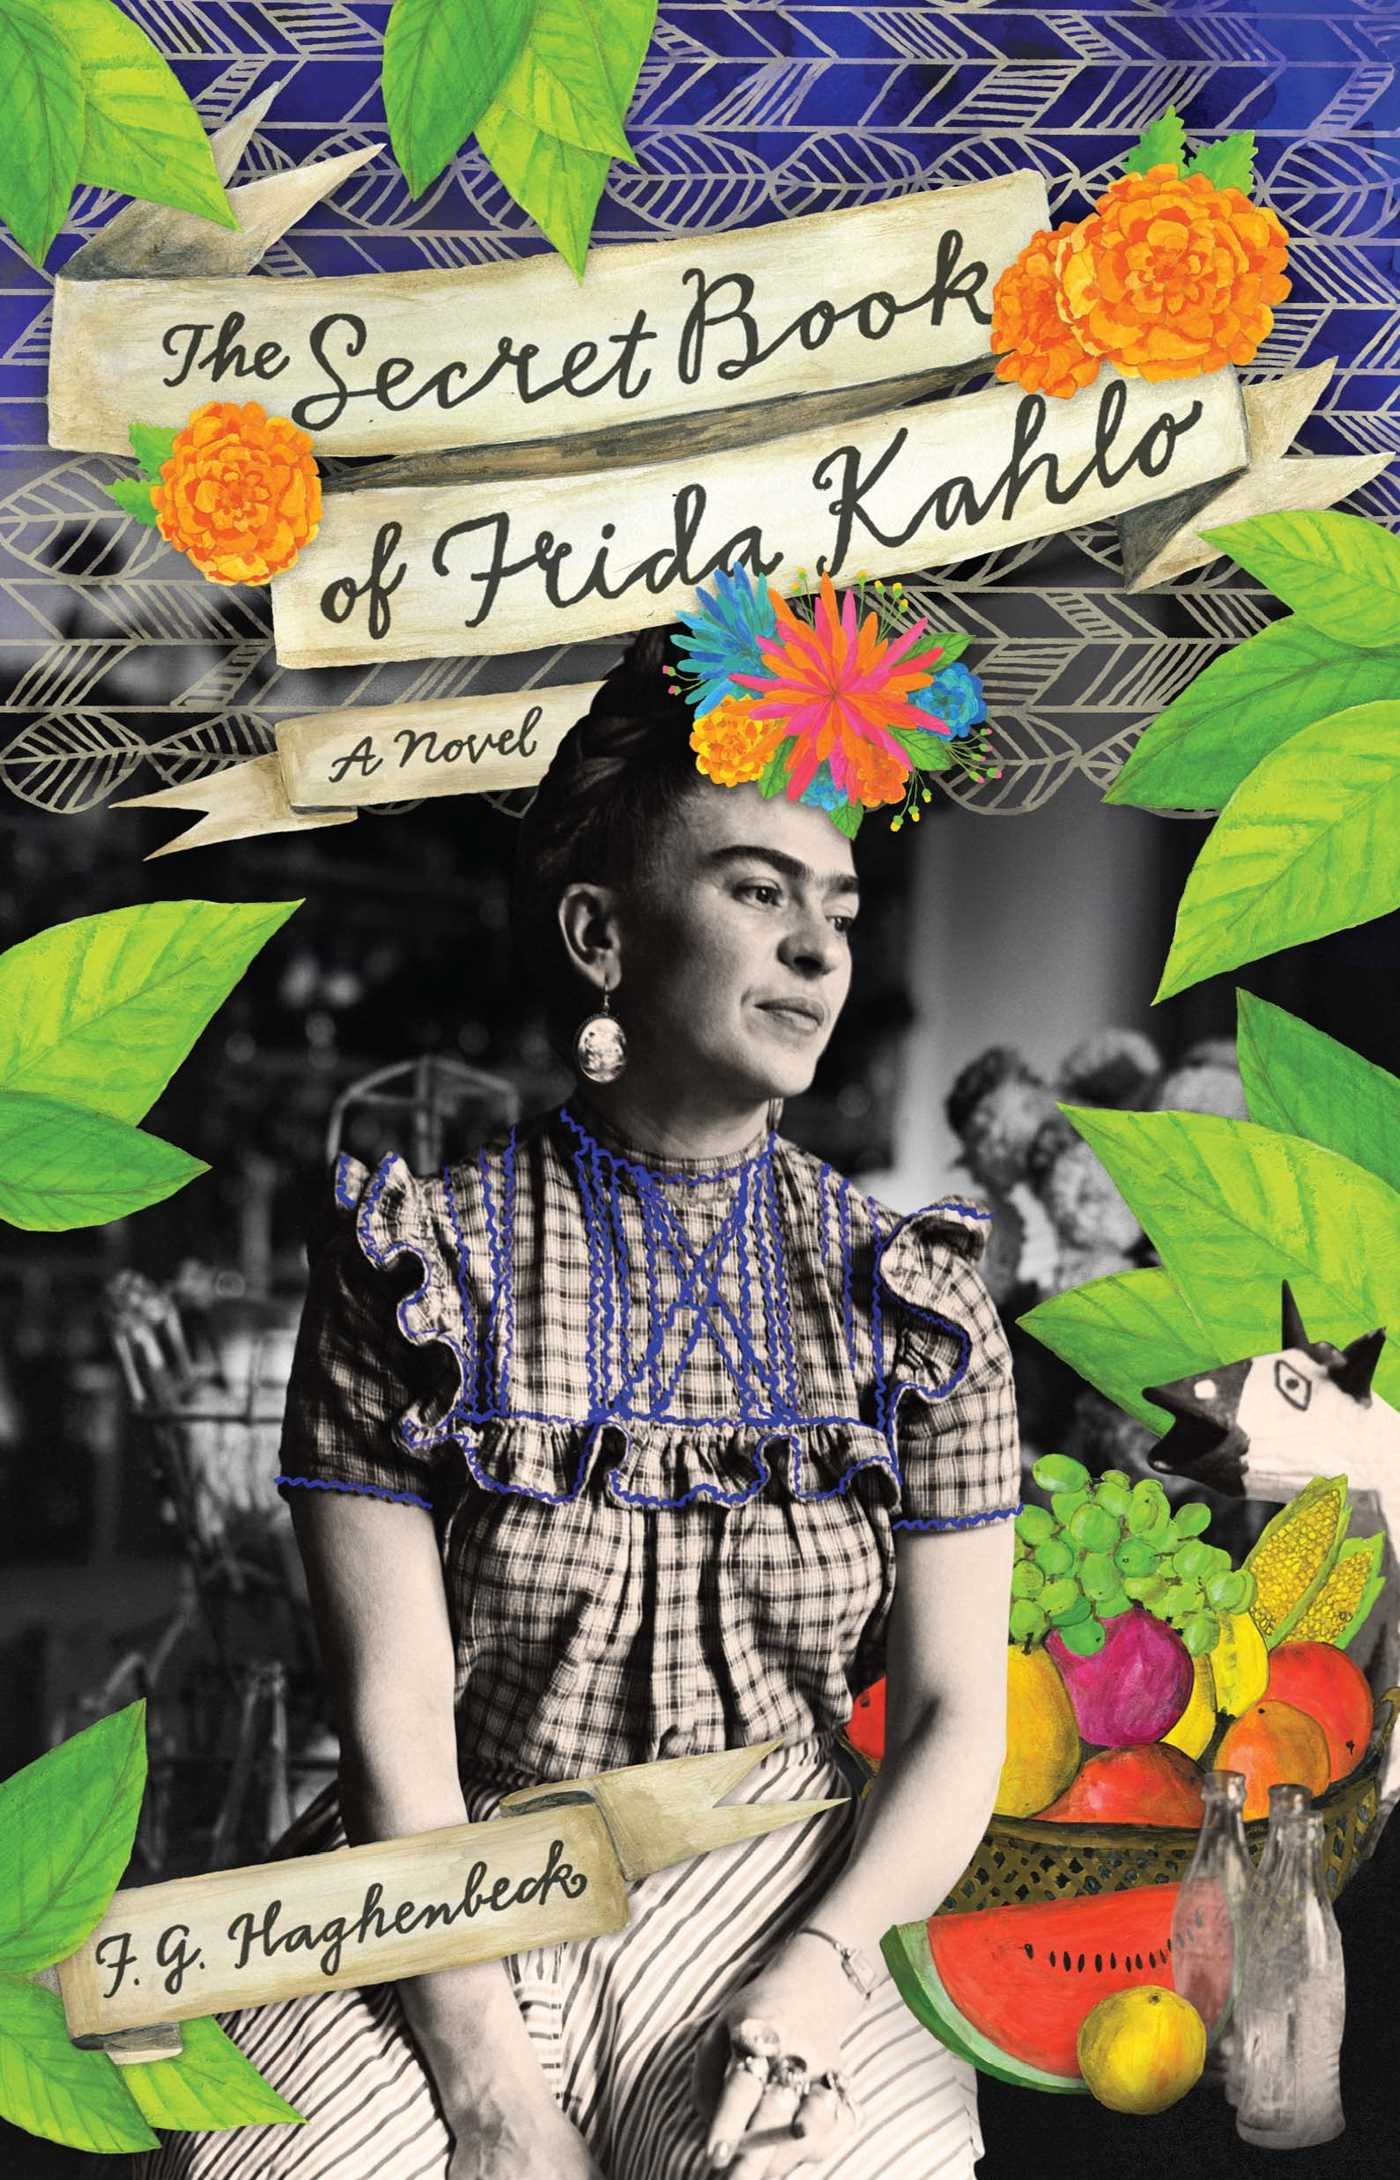 The secret book of frida kahlo 9781451632835 hr